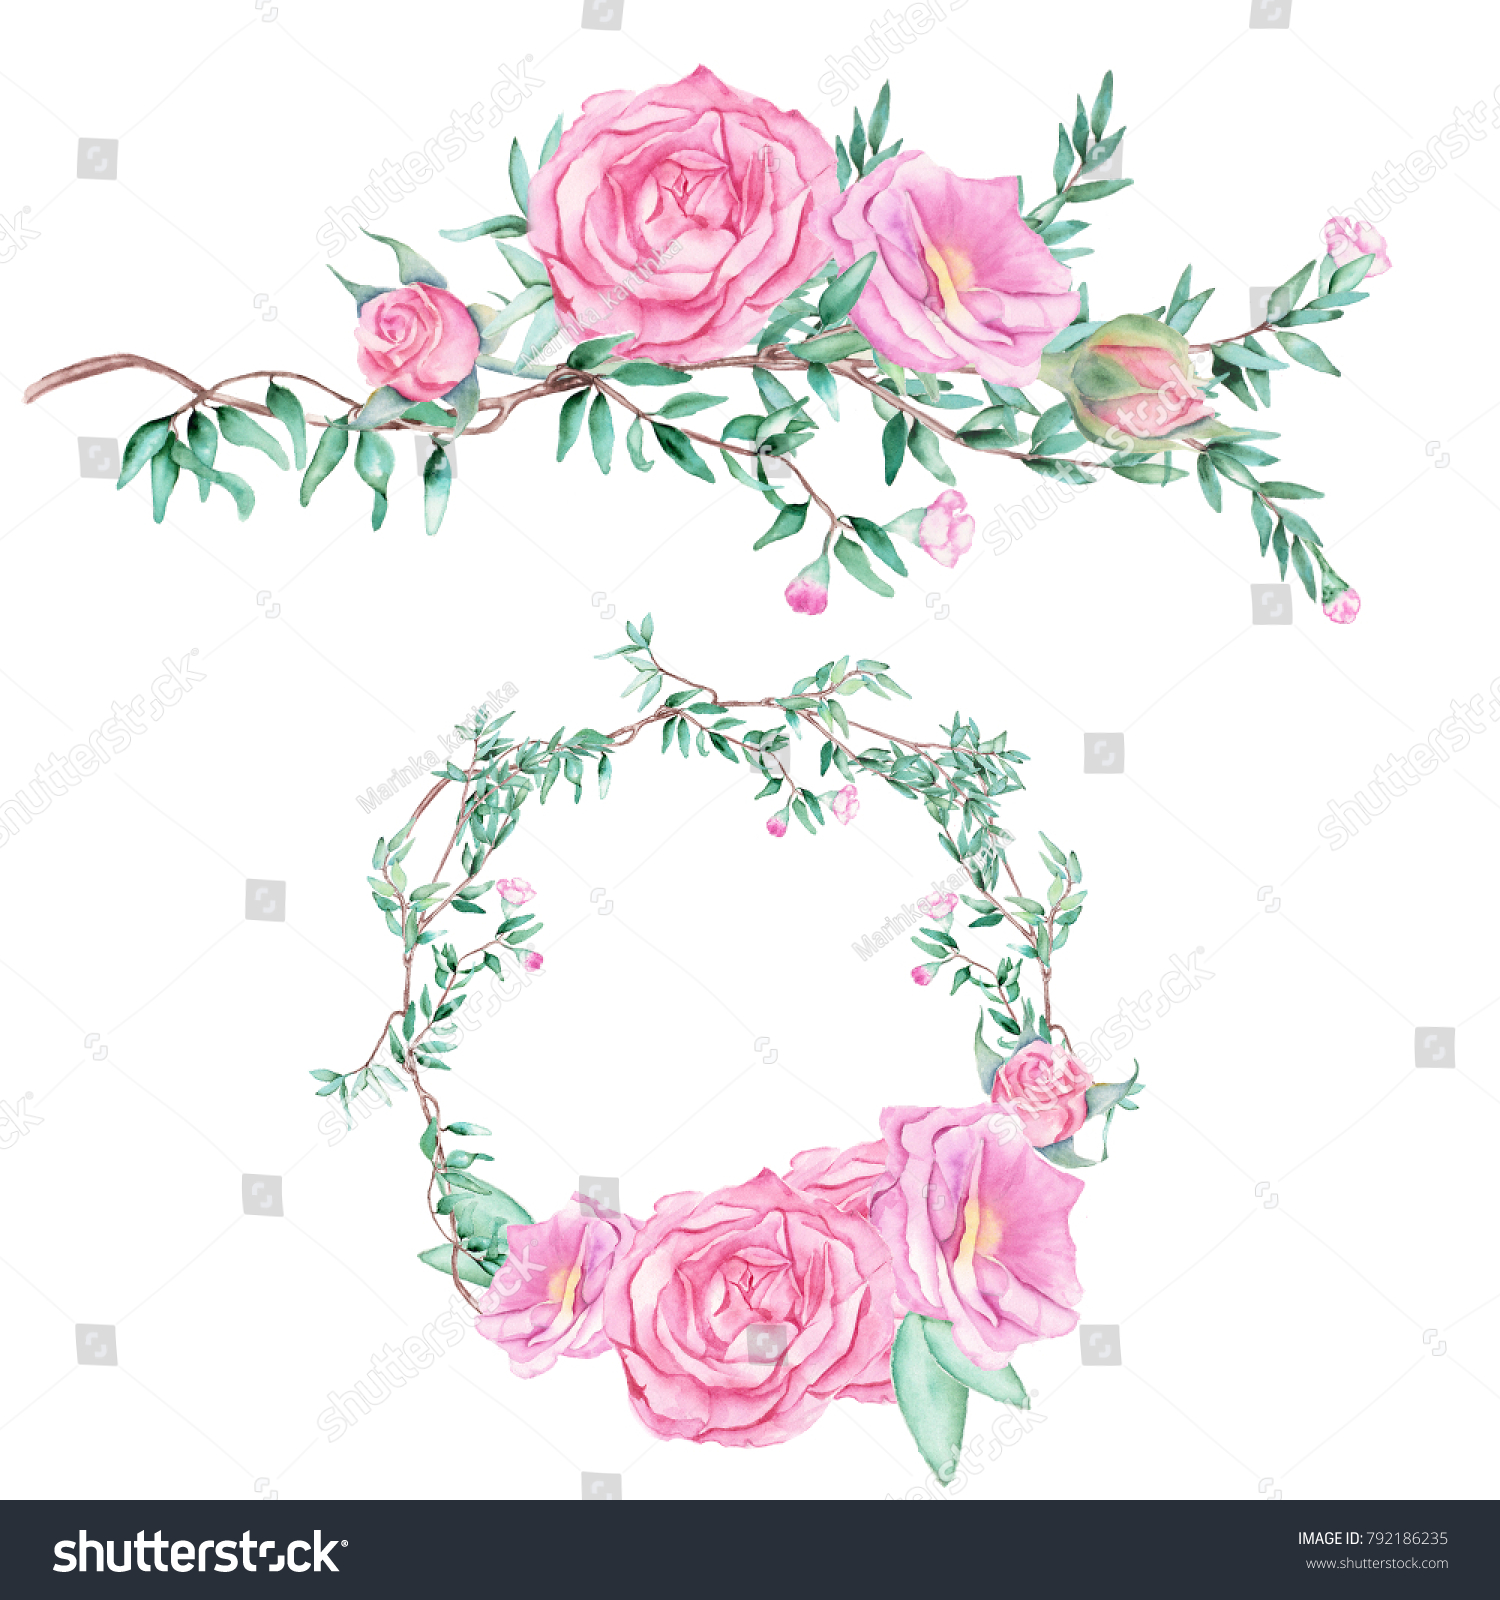 Royalty Free Stock Illustration Of Delicate Watercolor Set Floral